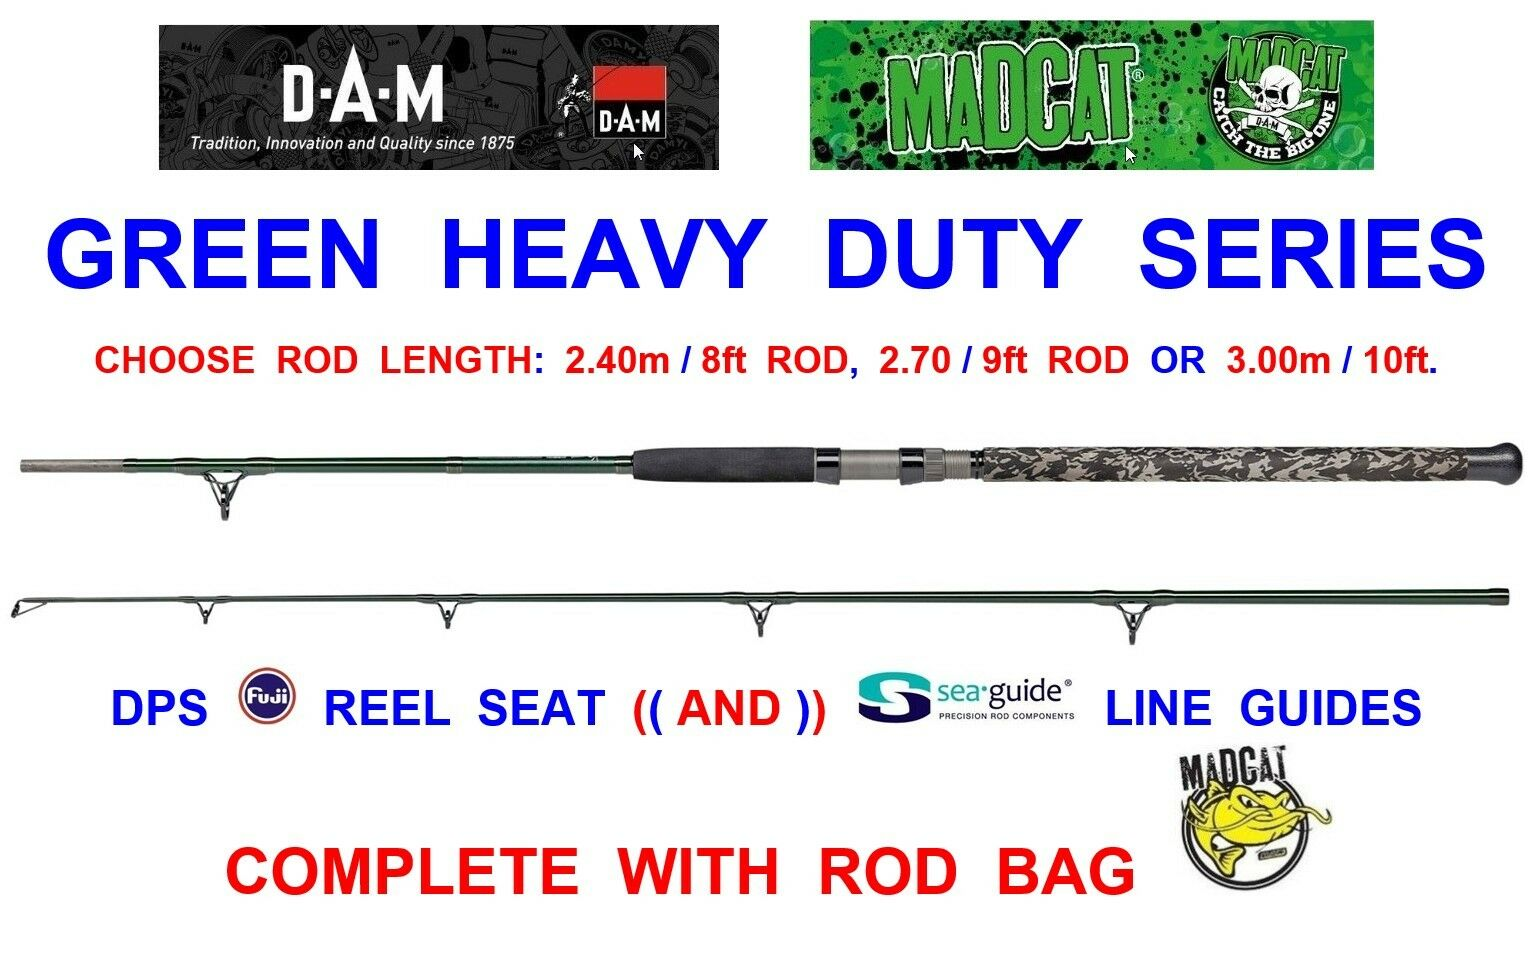 2019 DAM MAD CAT GREEN HEAVY DUTY CATFISH ROD COARSE BOAT CLONK FISHING SPINNING